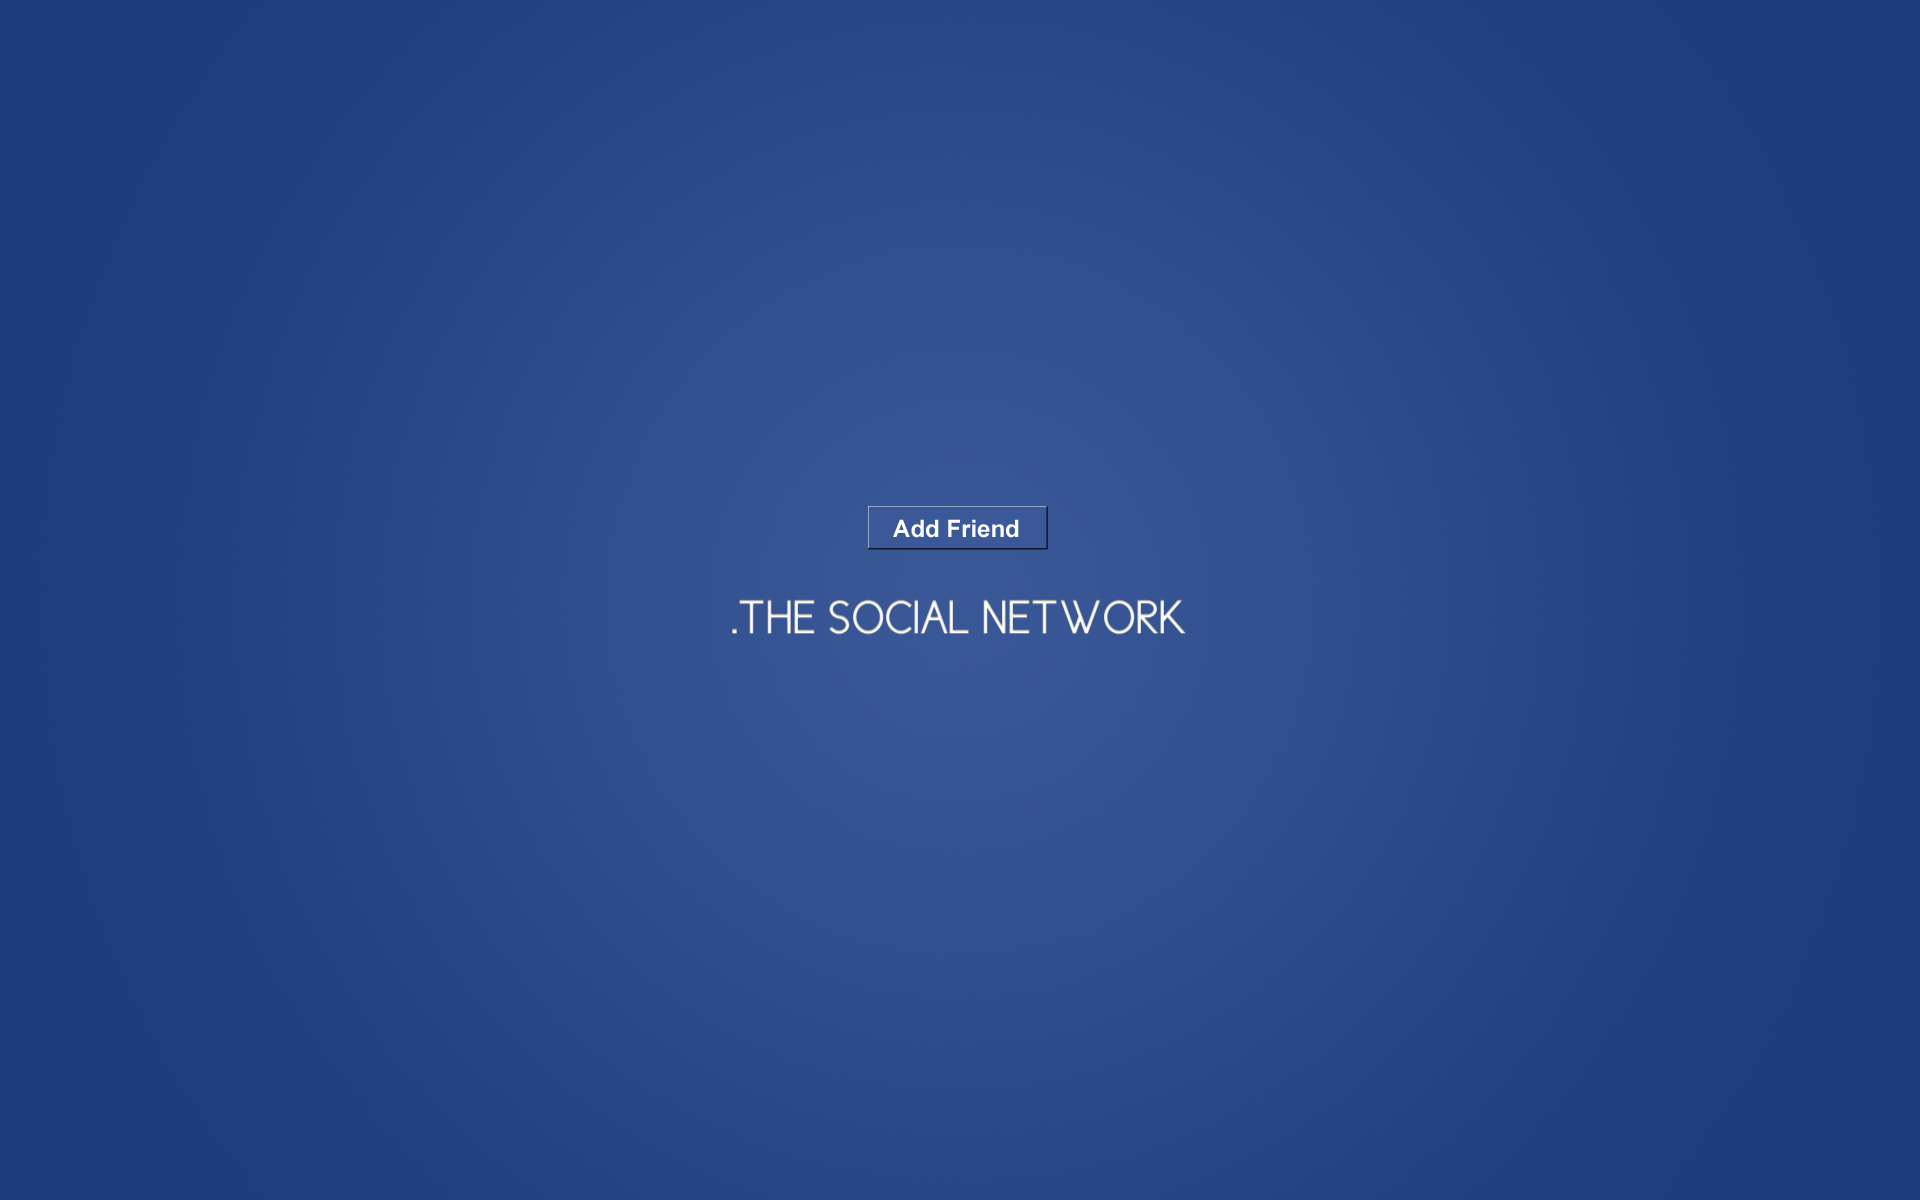 The Social Network Wallpapers Pack Download V.26 - BsnSCB Graphics